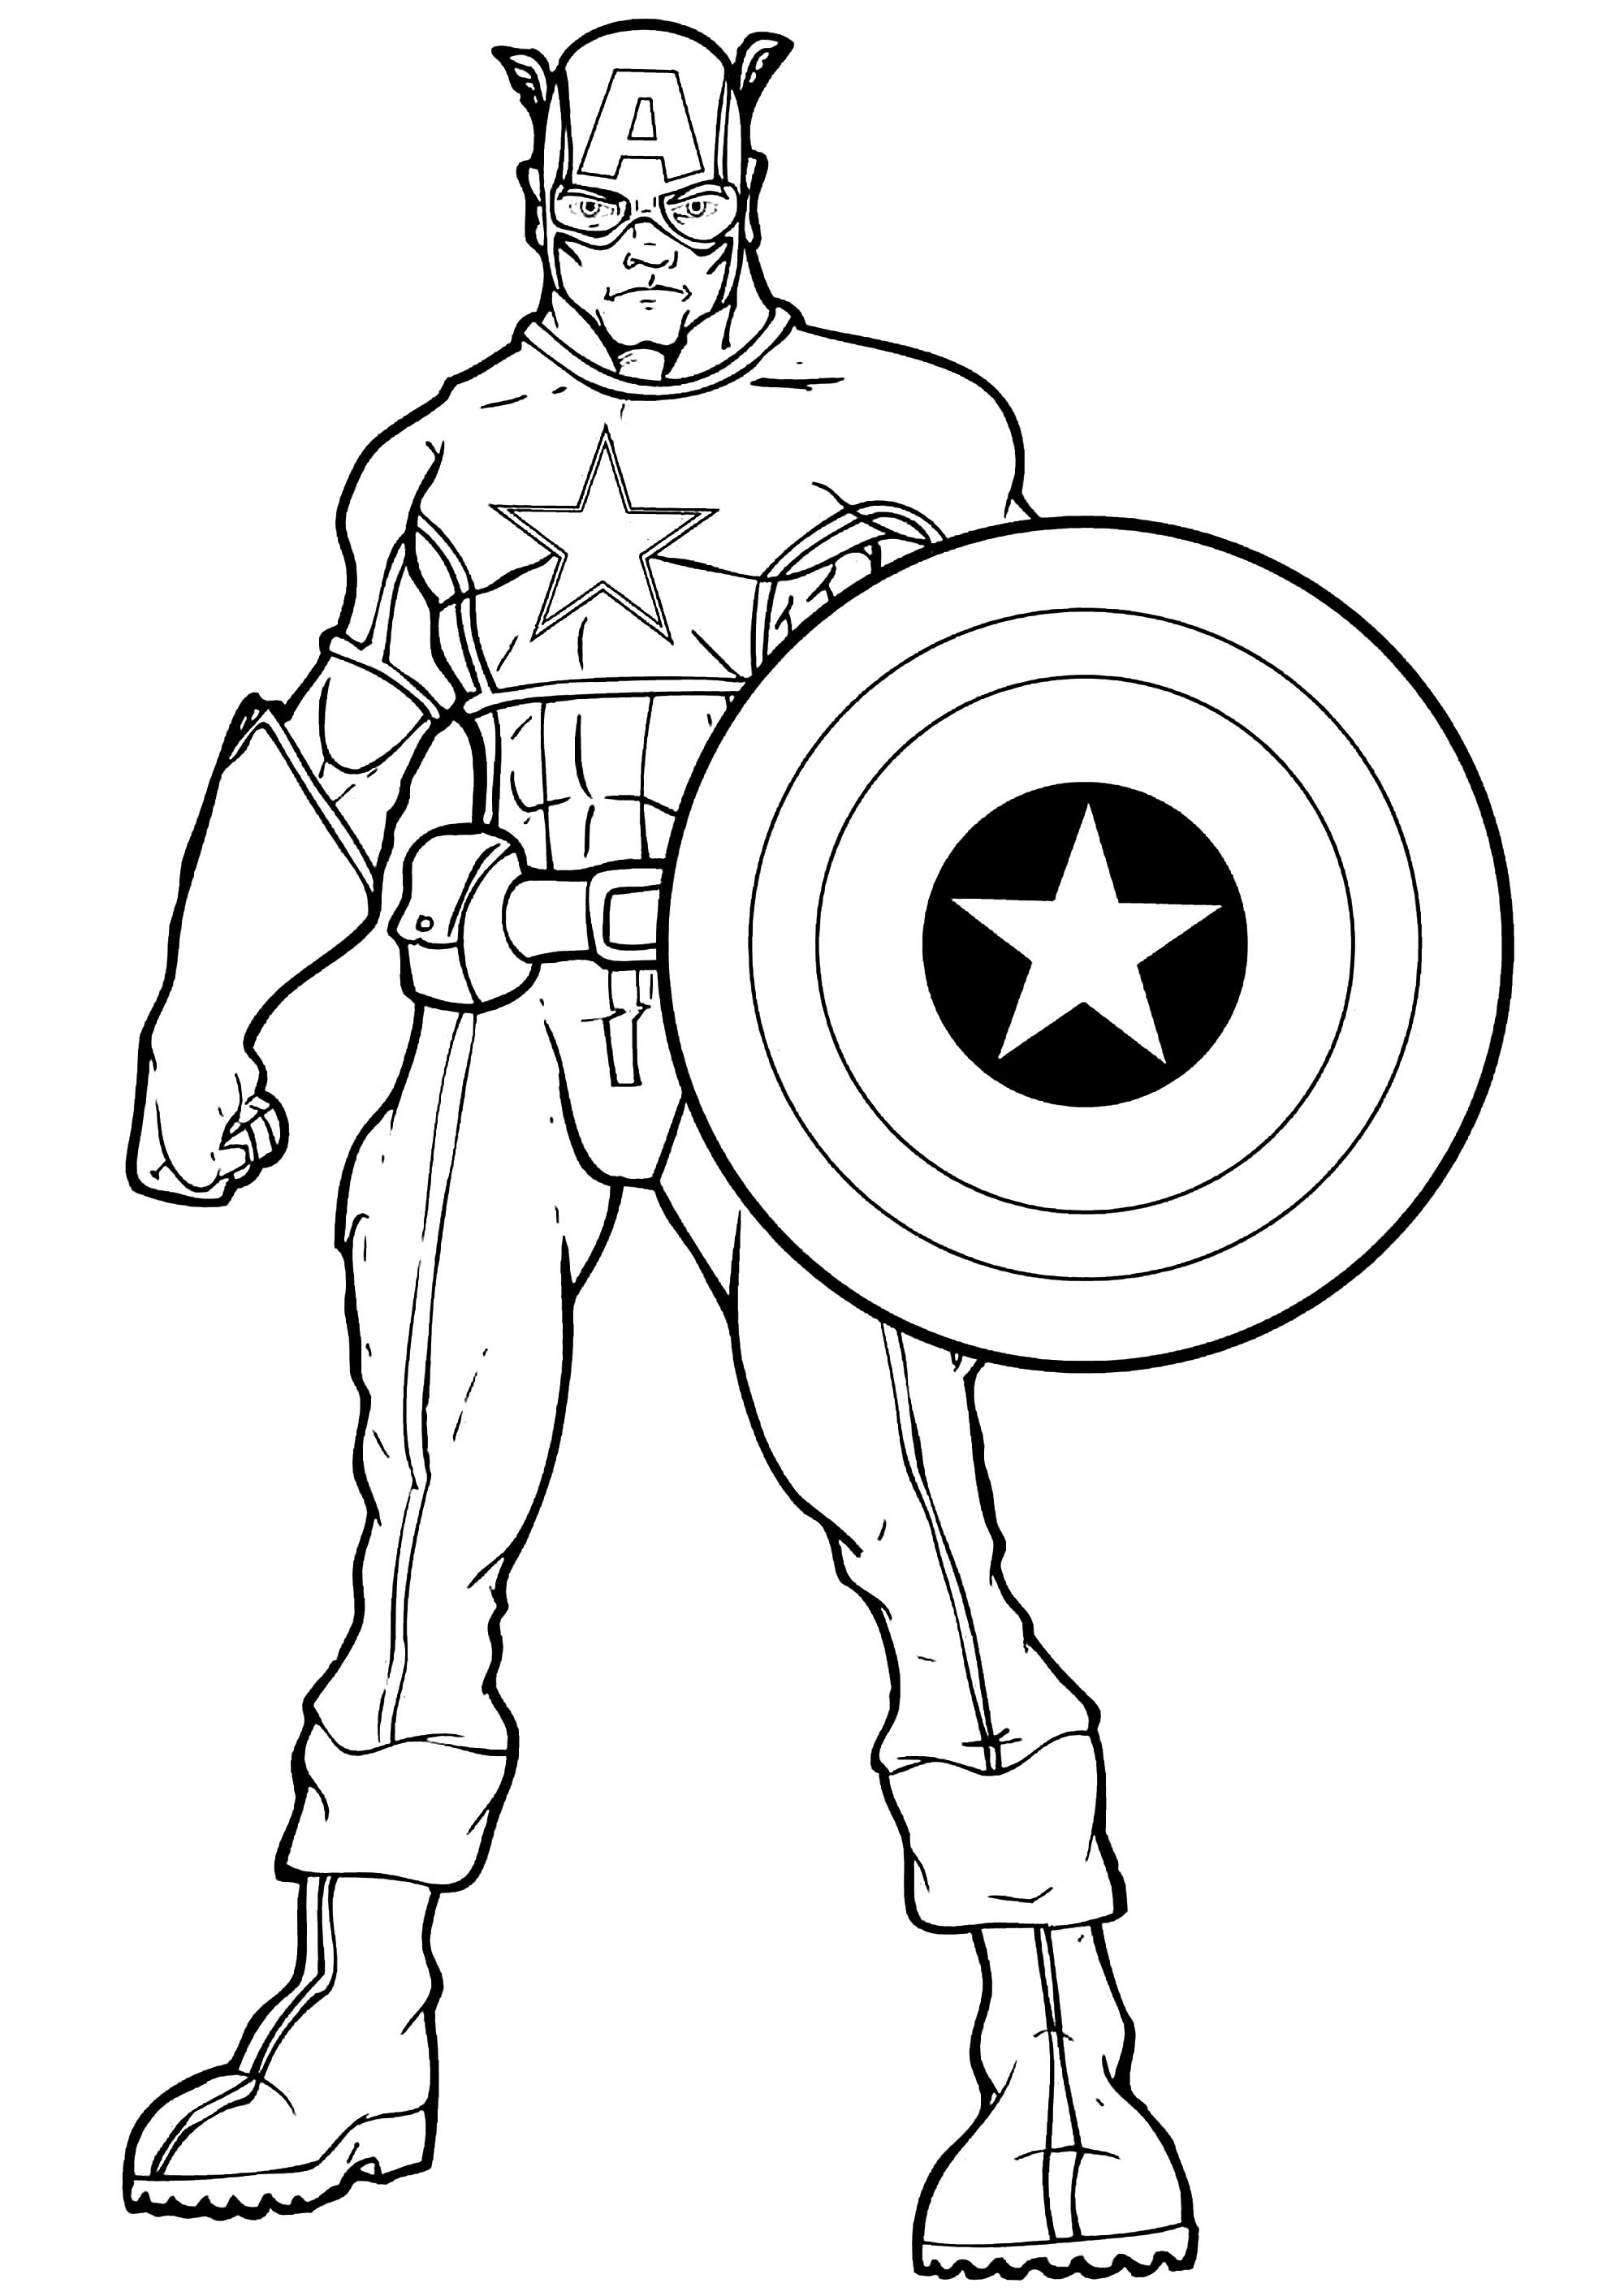 captain america for coloring captain america coloring pages to download and print for free captain america for coloring